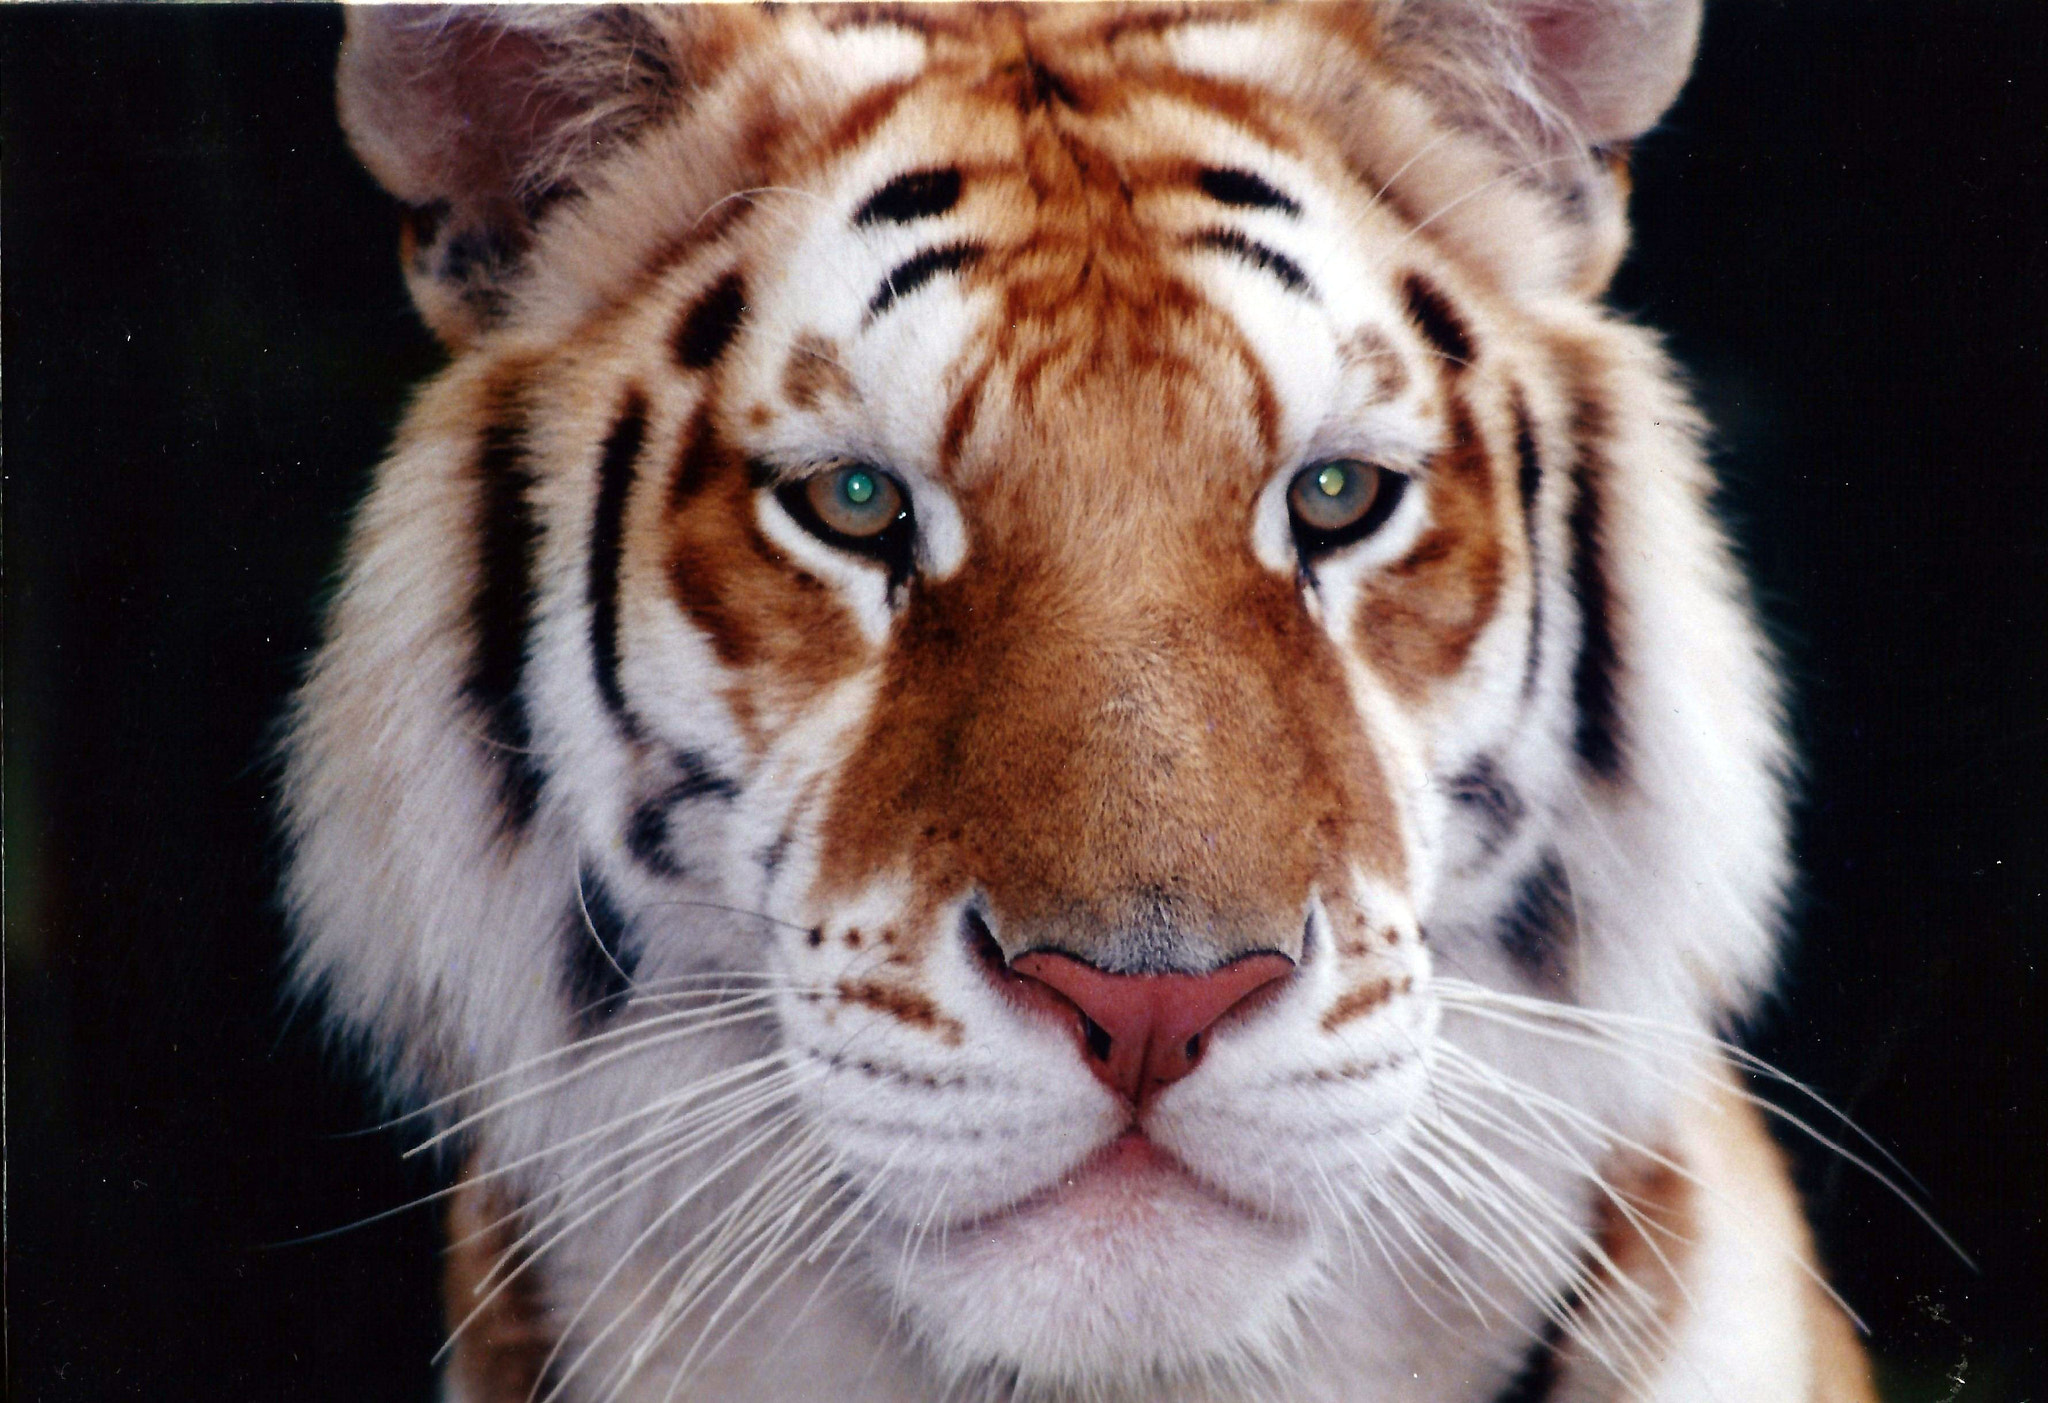 Photograph tiger by Irene Soxsmith on 500px